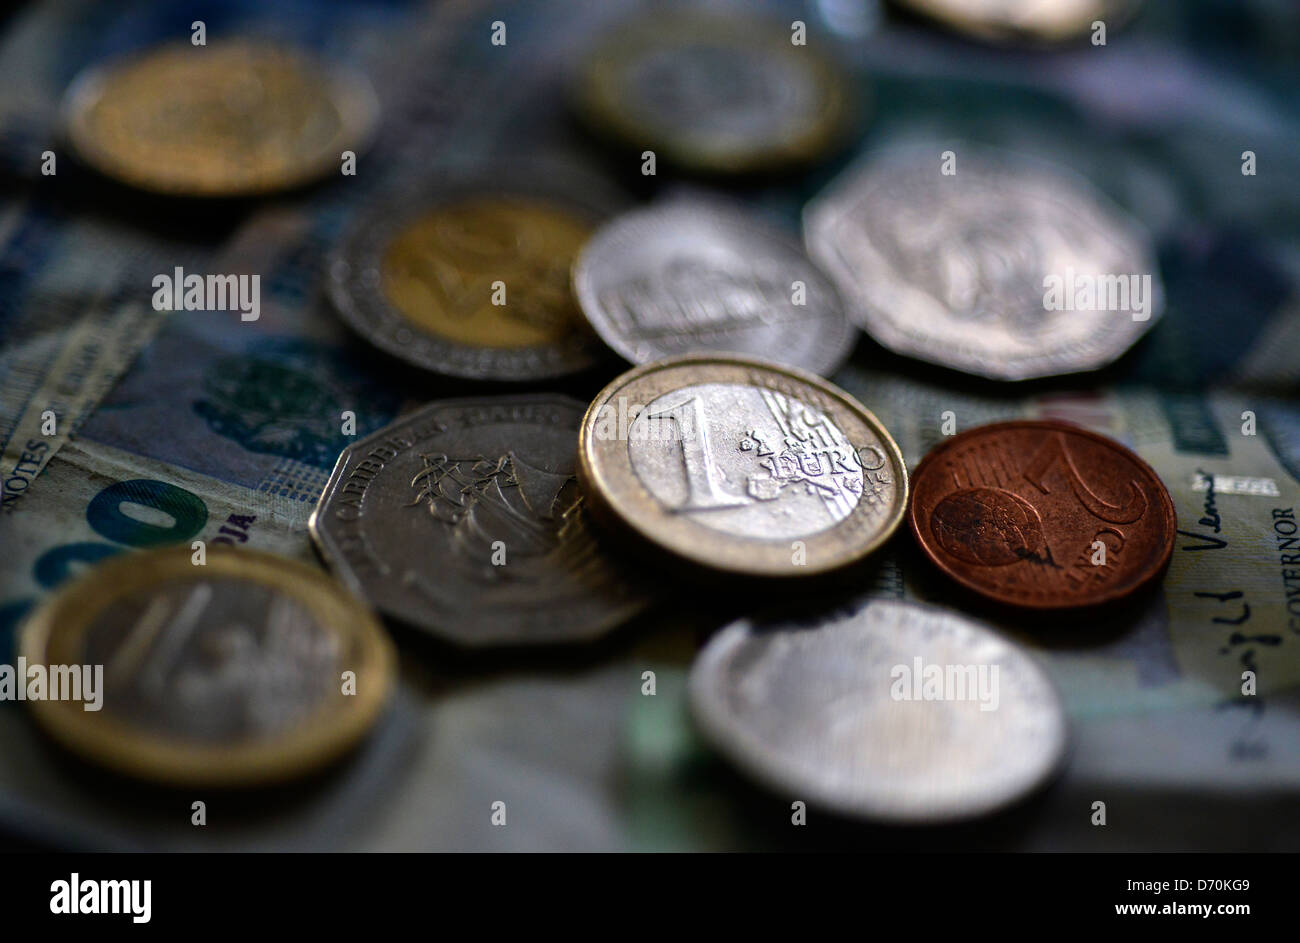 A selection of international currency coins and notes. Stock Photo